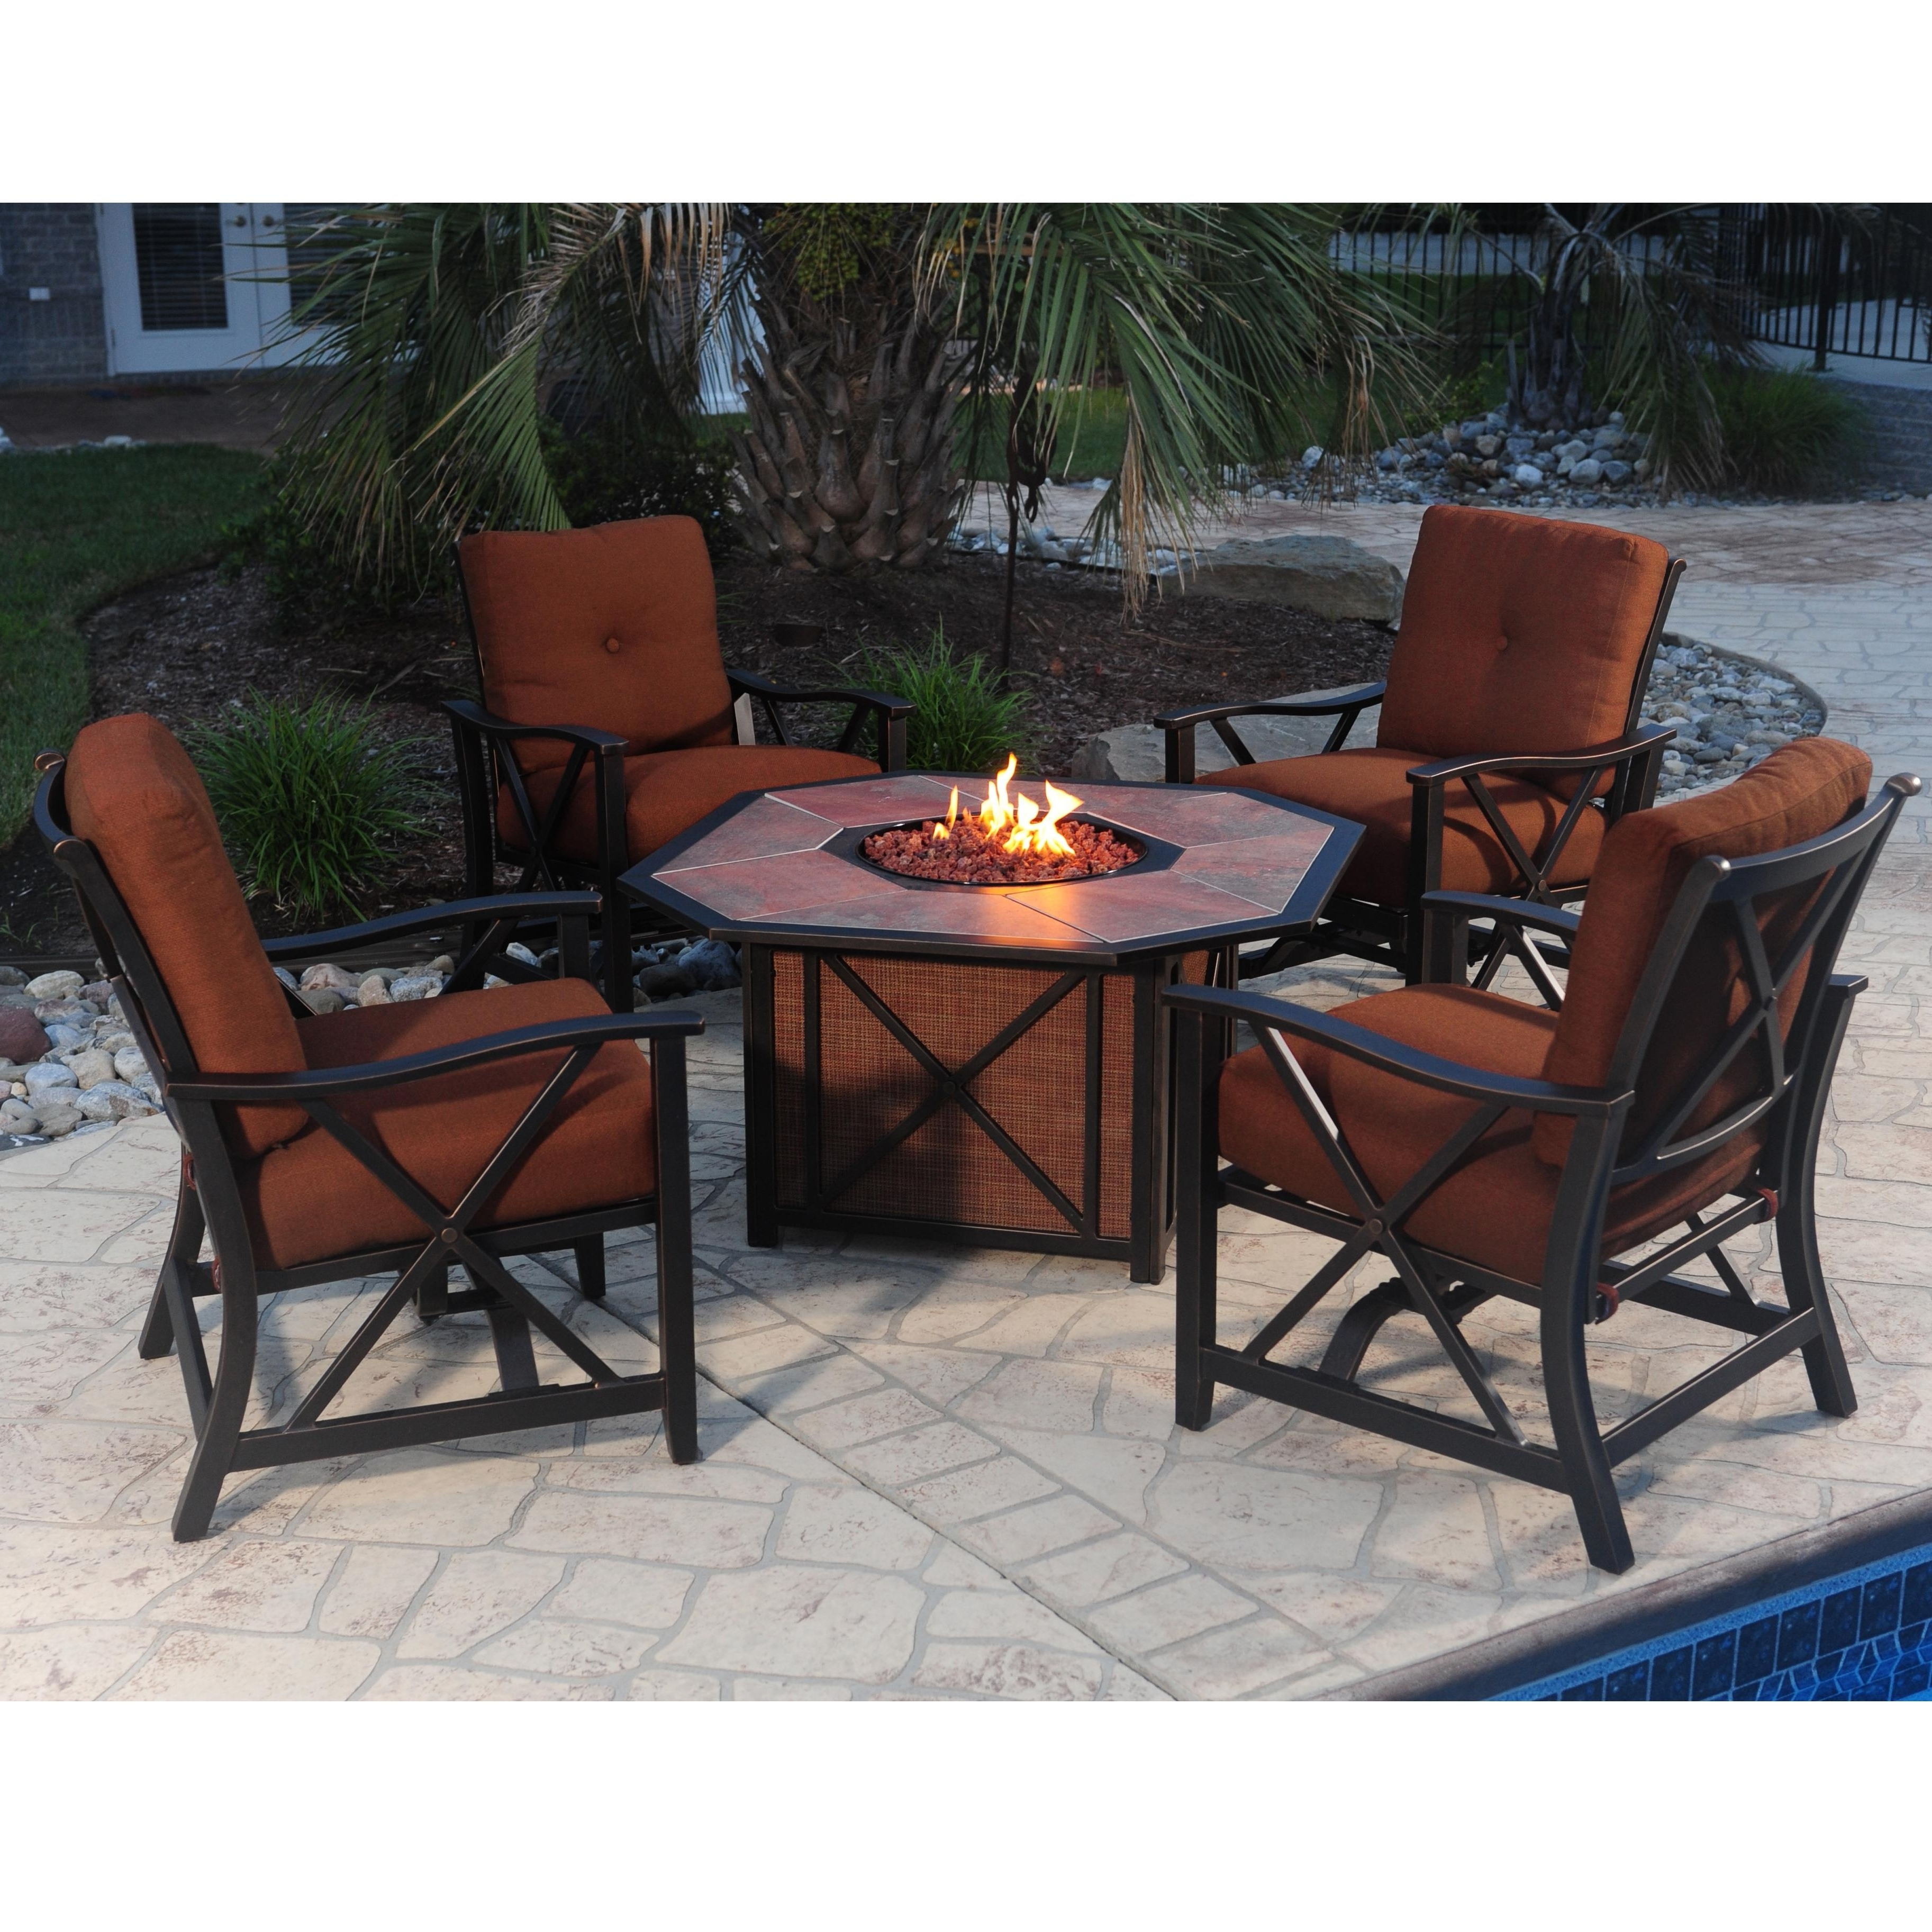 Most Recently Released Patio Conversation Sets With Fire Table Pertaining To Agio Haywood 5 Piece Outdoor Fire Pit Set With Aluminum Stationary (View 15 of 15)